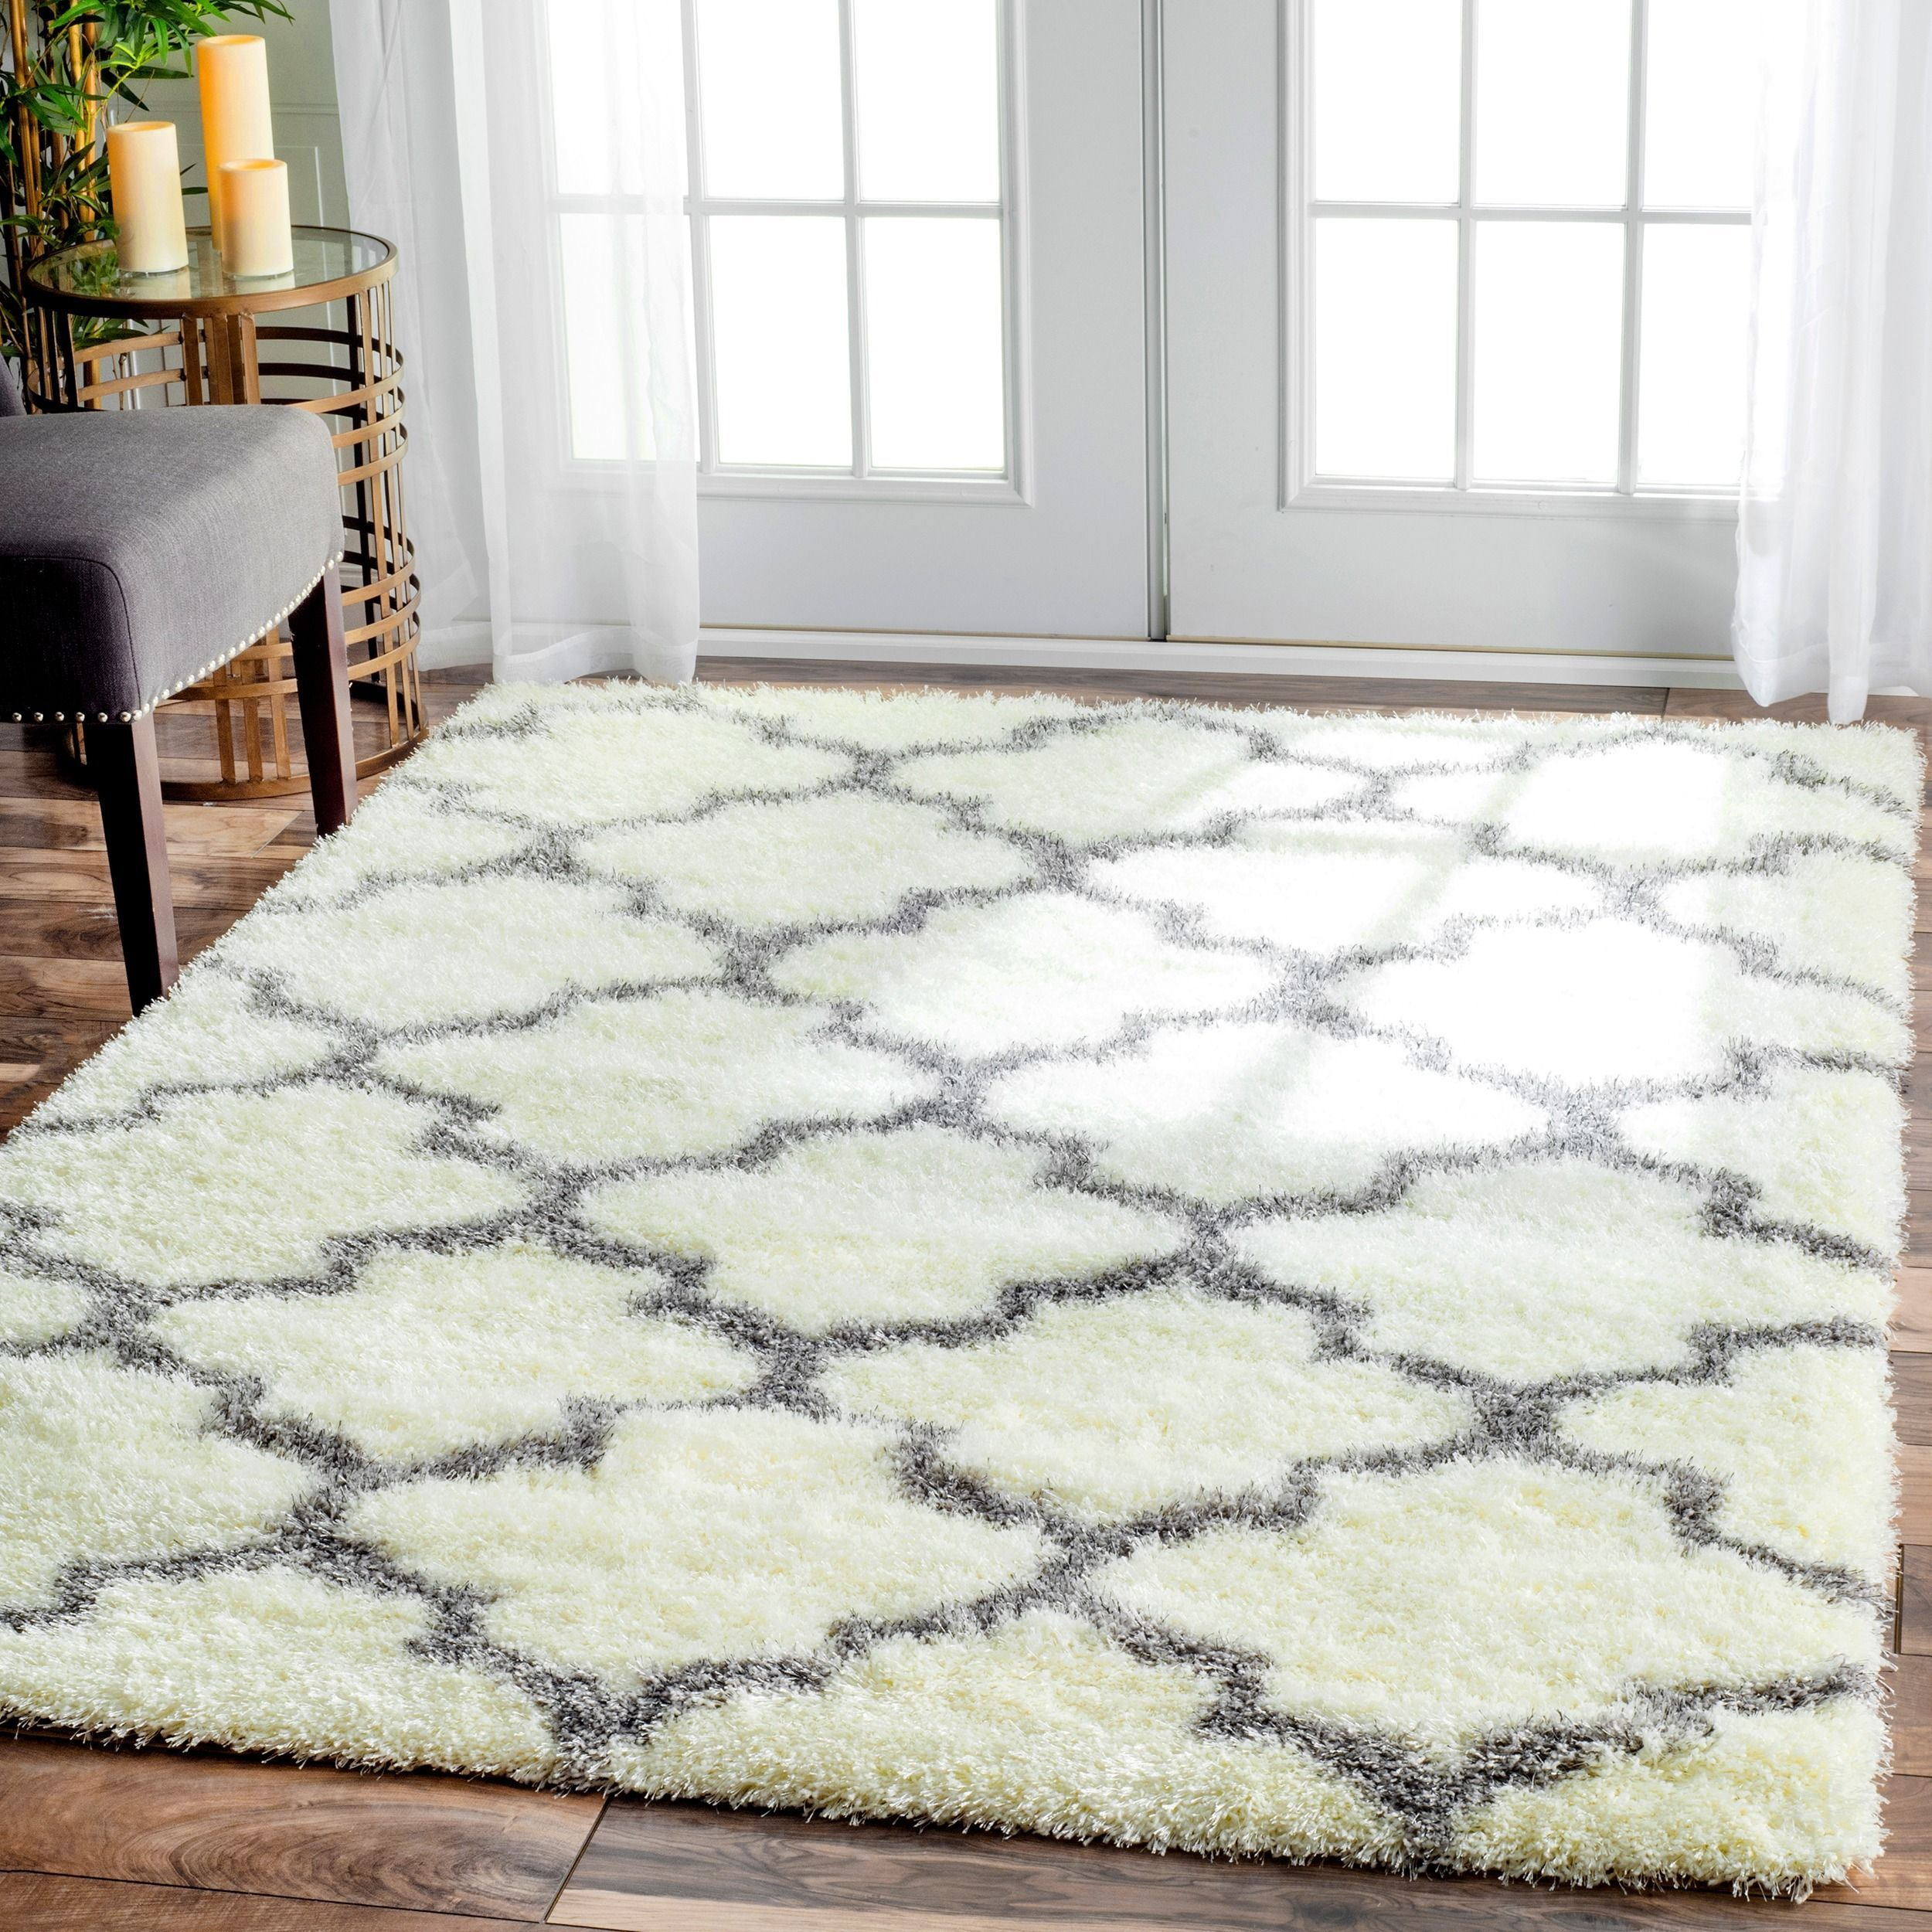 soft and plush, this cozy moroccan trellis rug adds warmth and